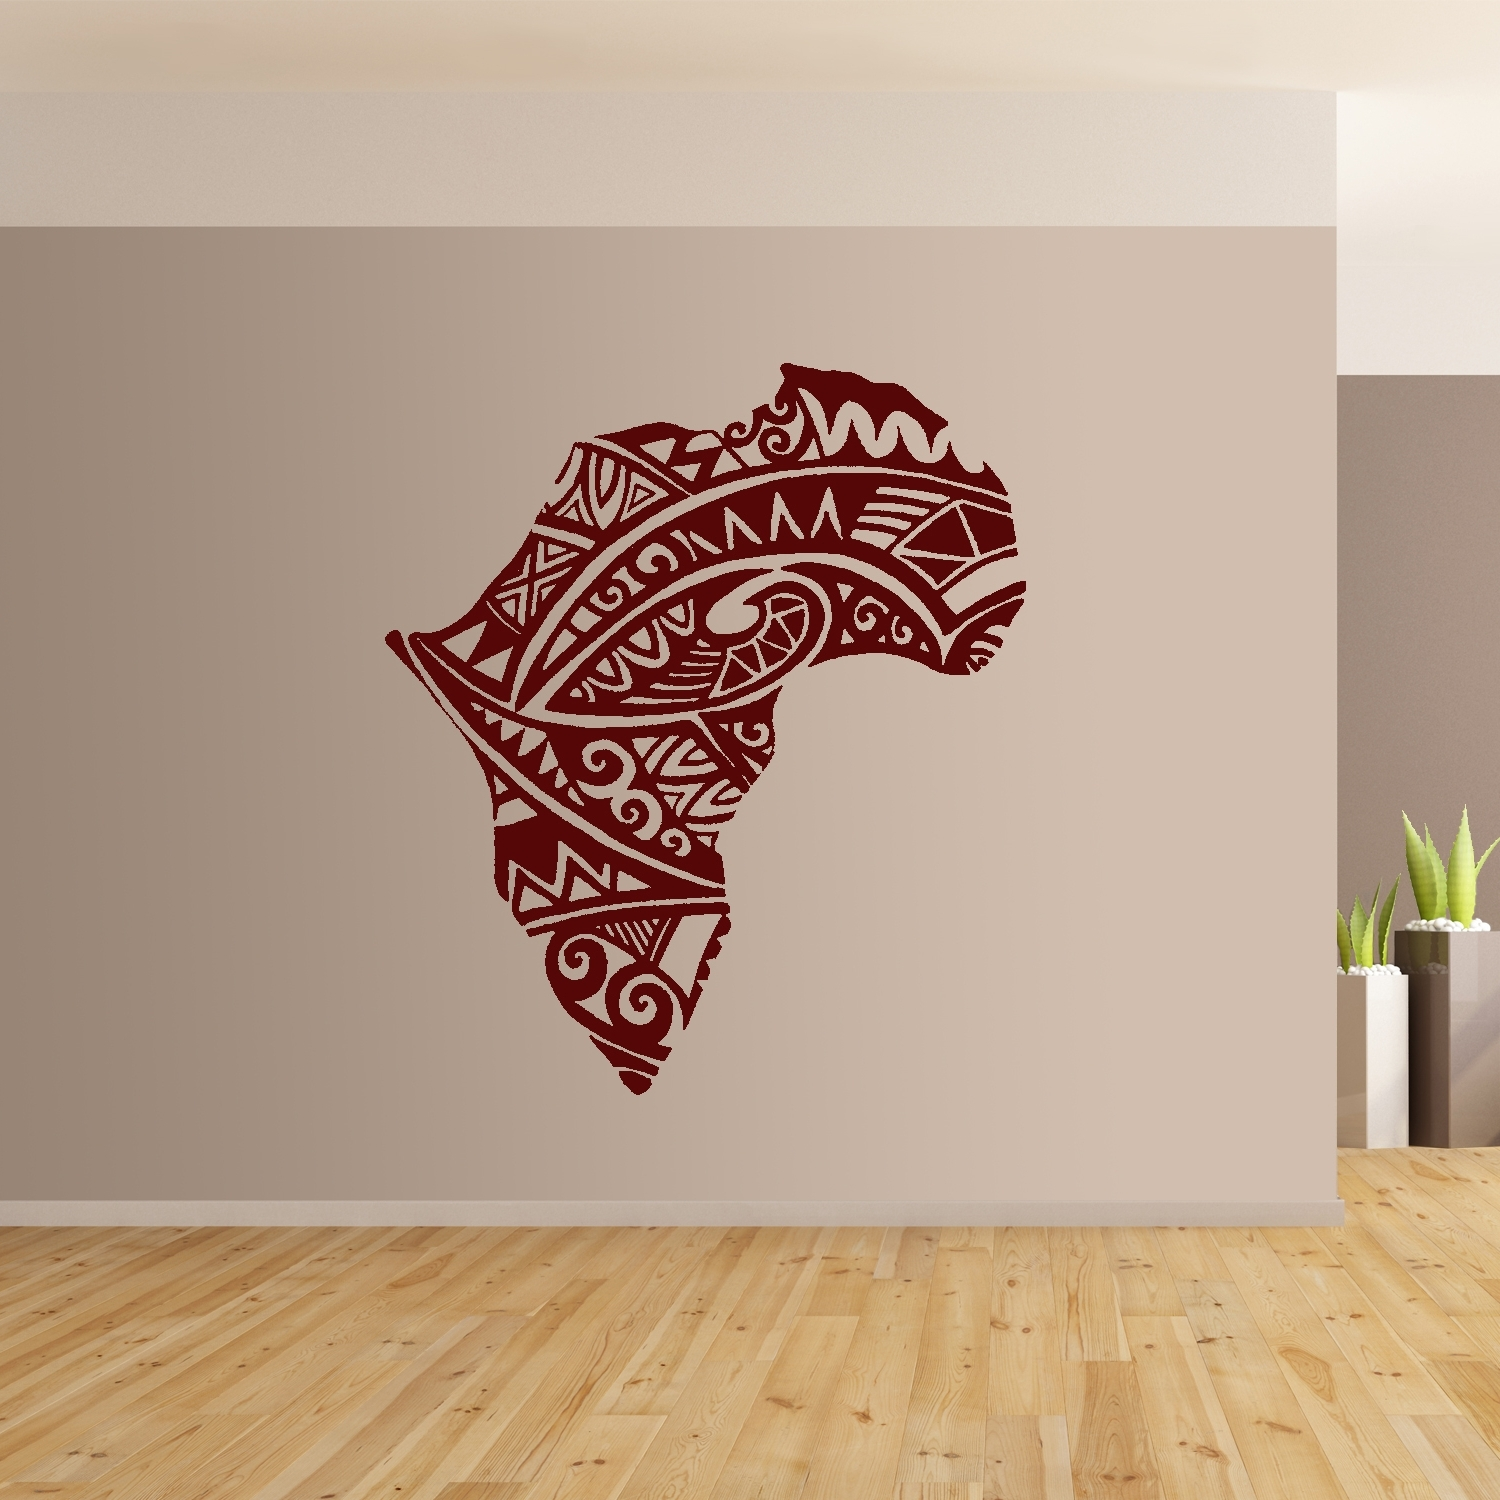 2018 Burgundy Wall Art Within African Continent Wall Art Giant Sticker Mural Graphic Modern (View 5 of 15)